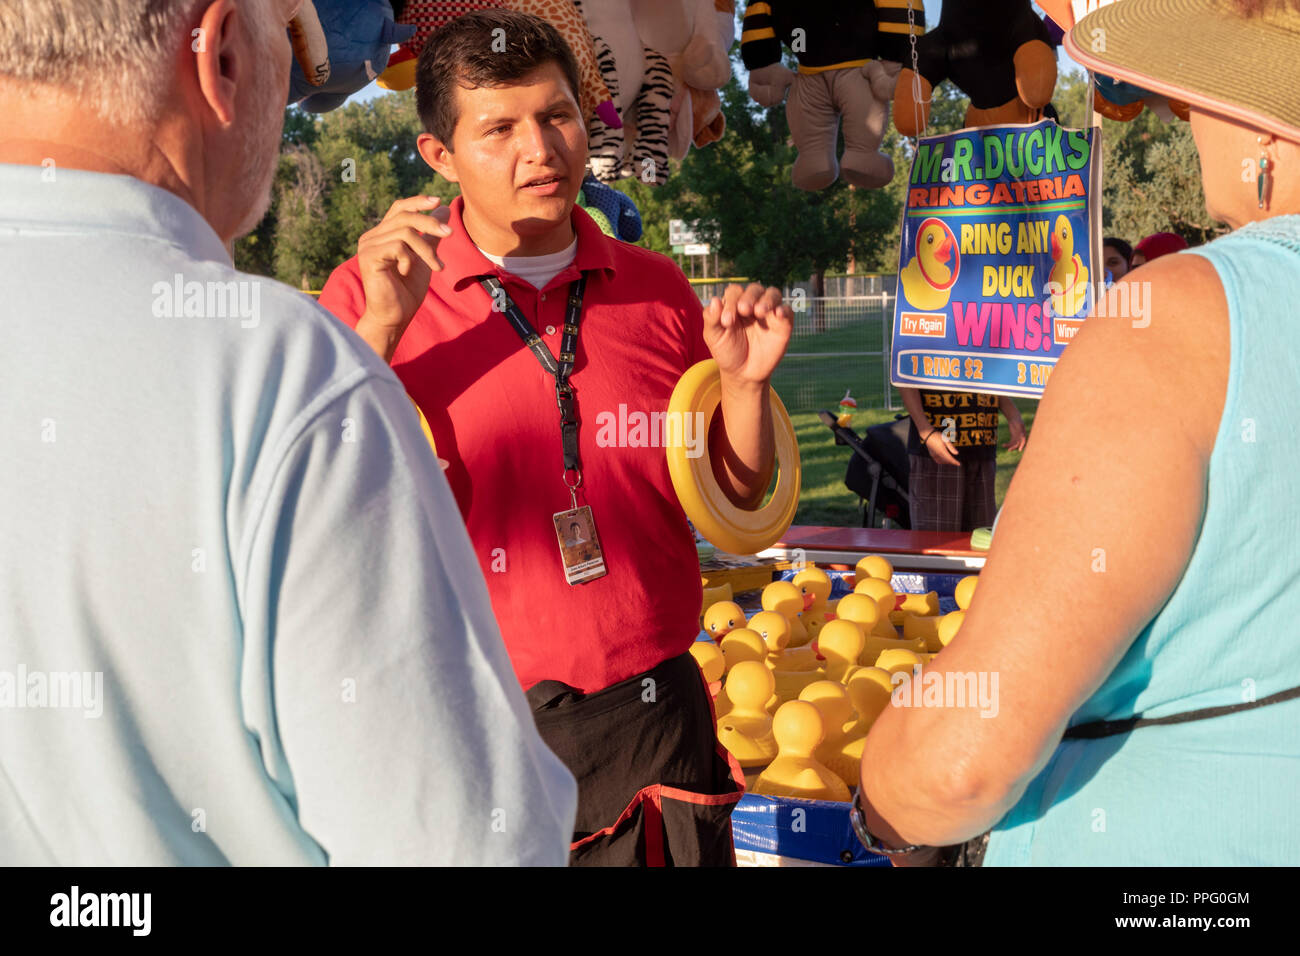 Wheat Ridge, Colorado - A worker explains a game at the annual Carnation Festival. The festival features food and entertainment. It was named for the  - Stock Image